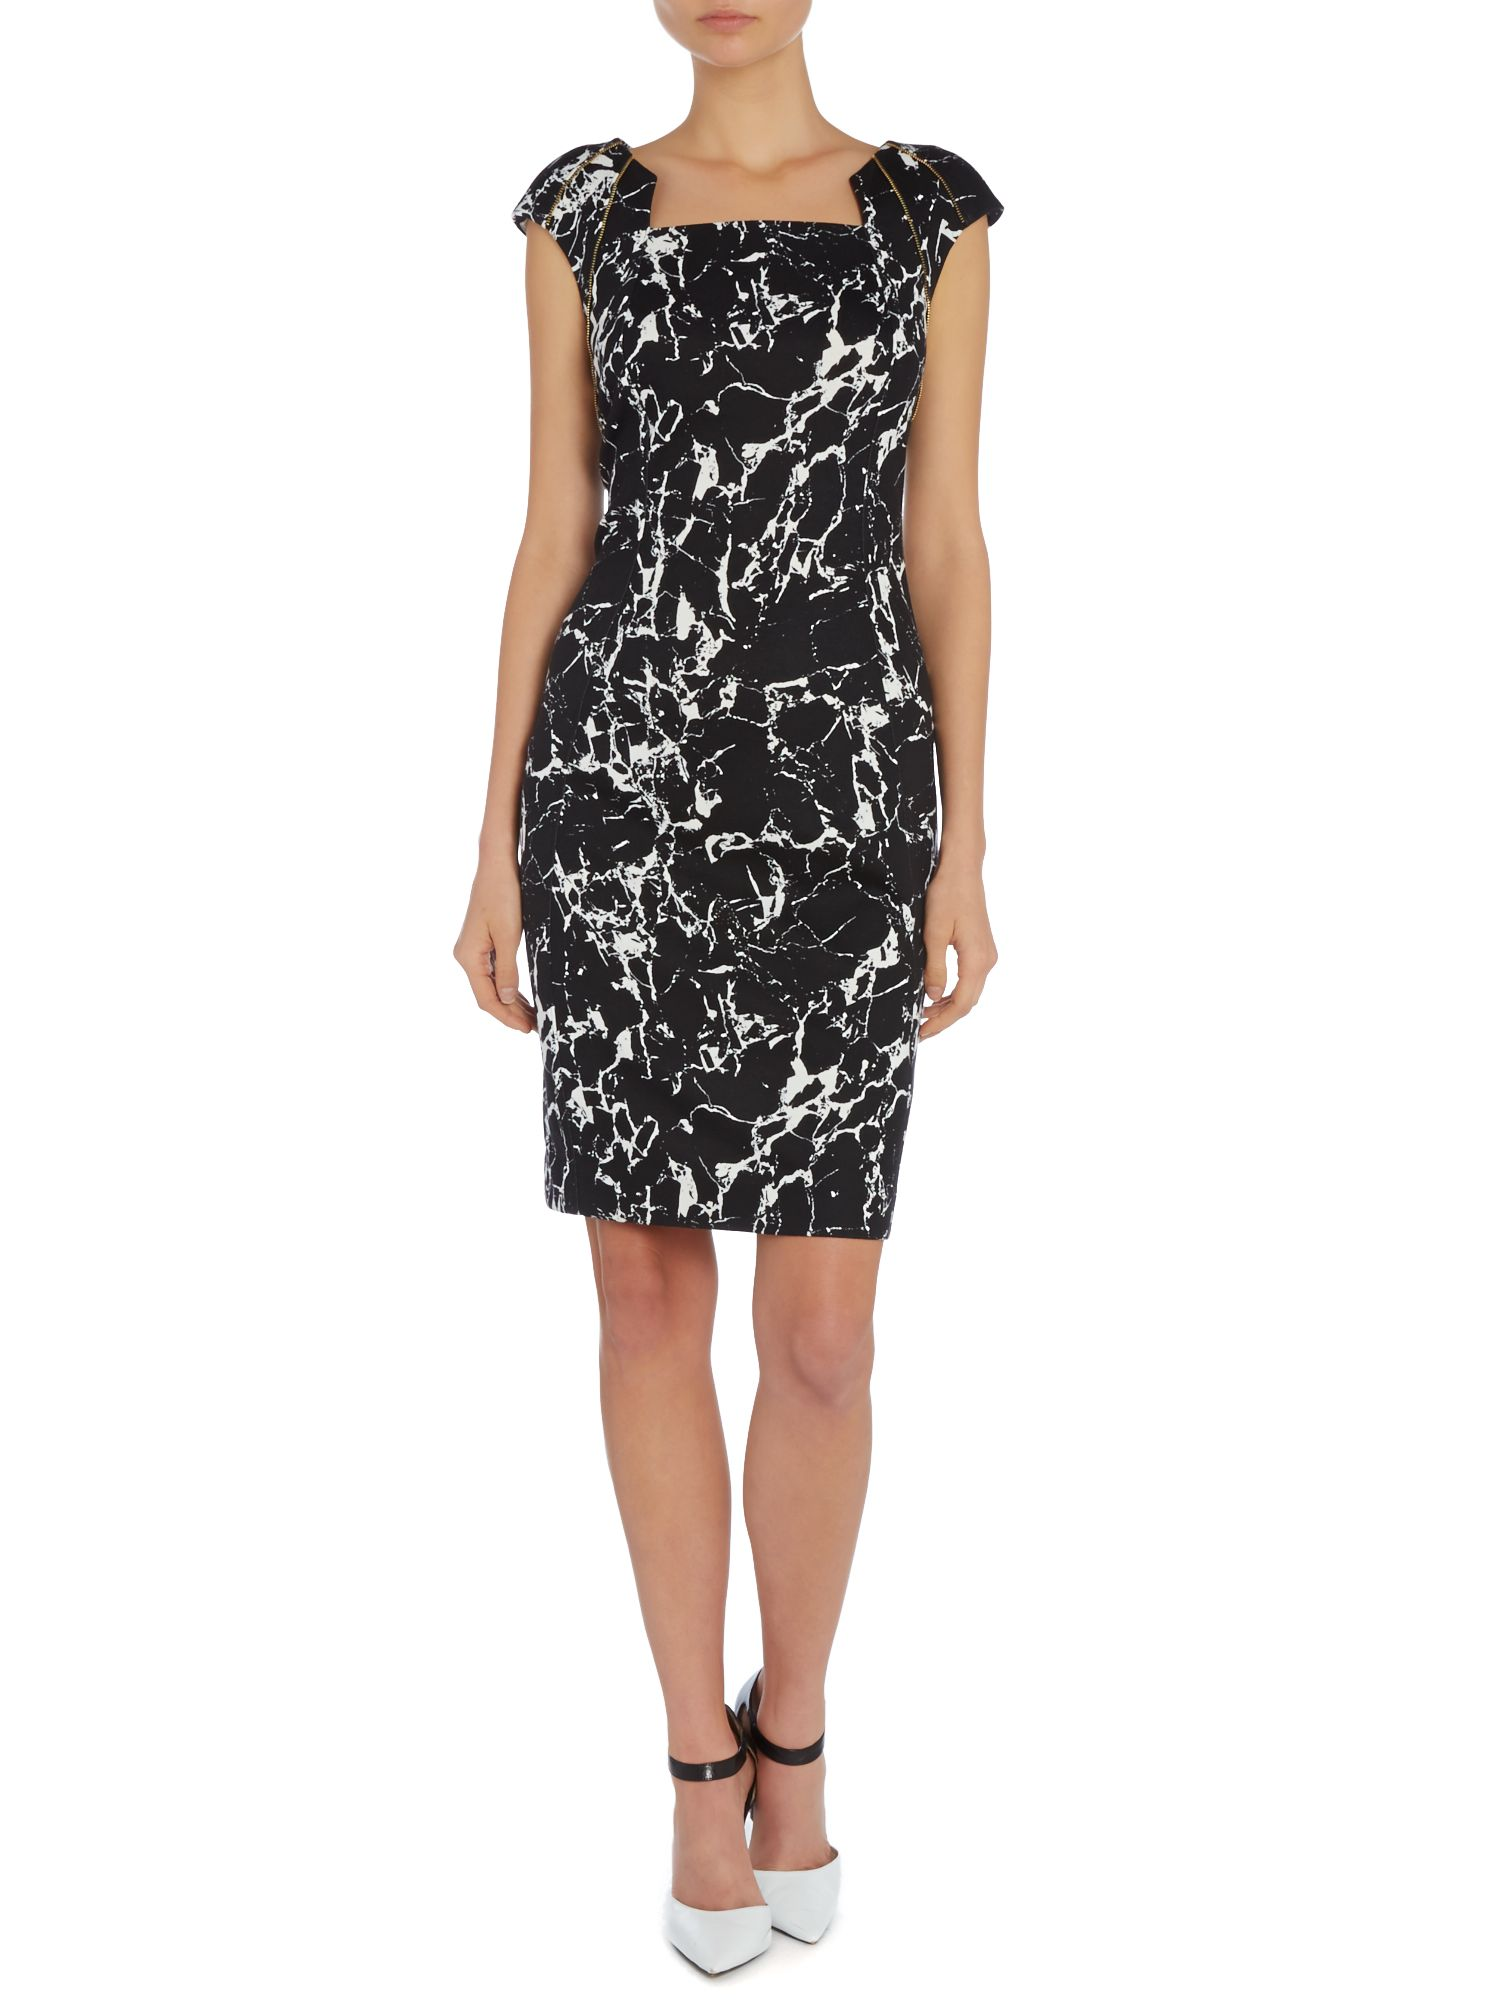 Cap sleeve marble print dress with zip shoulders